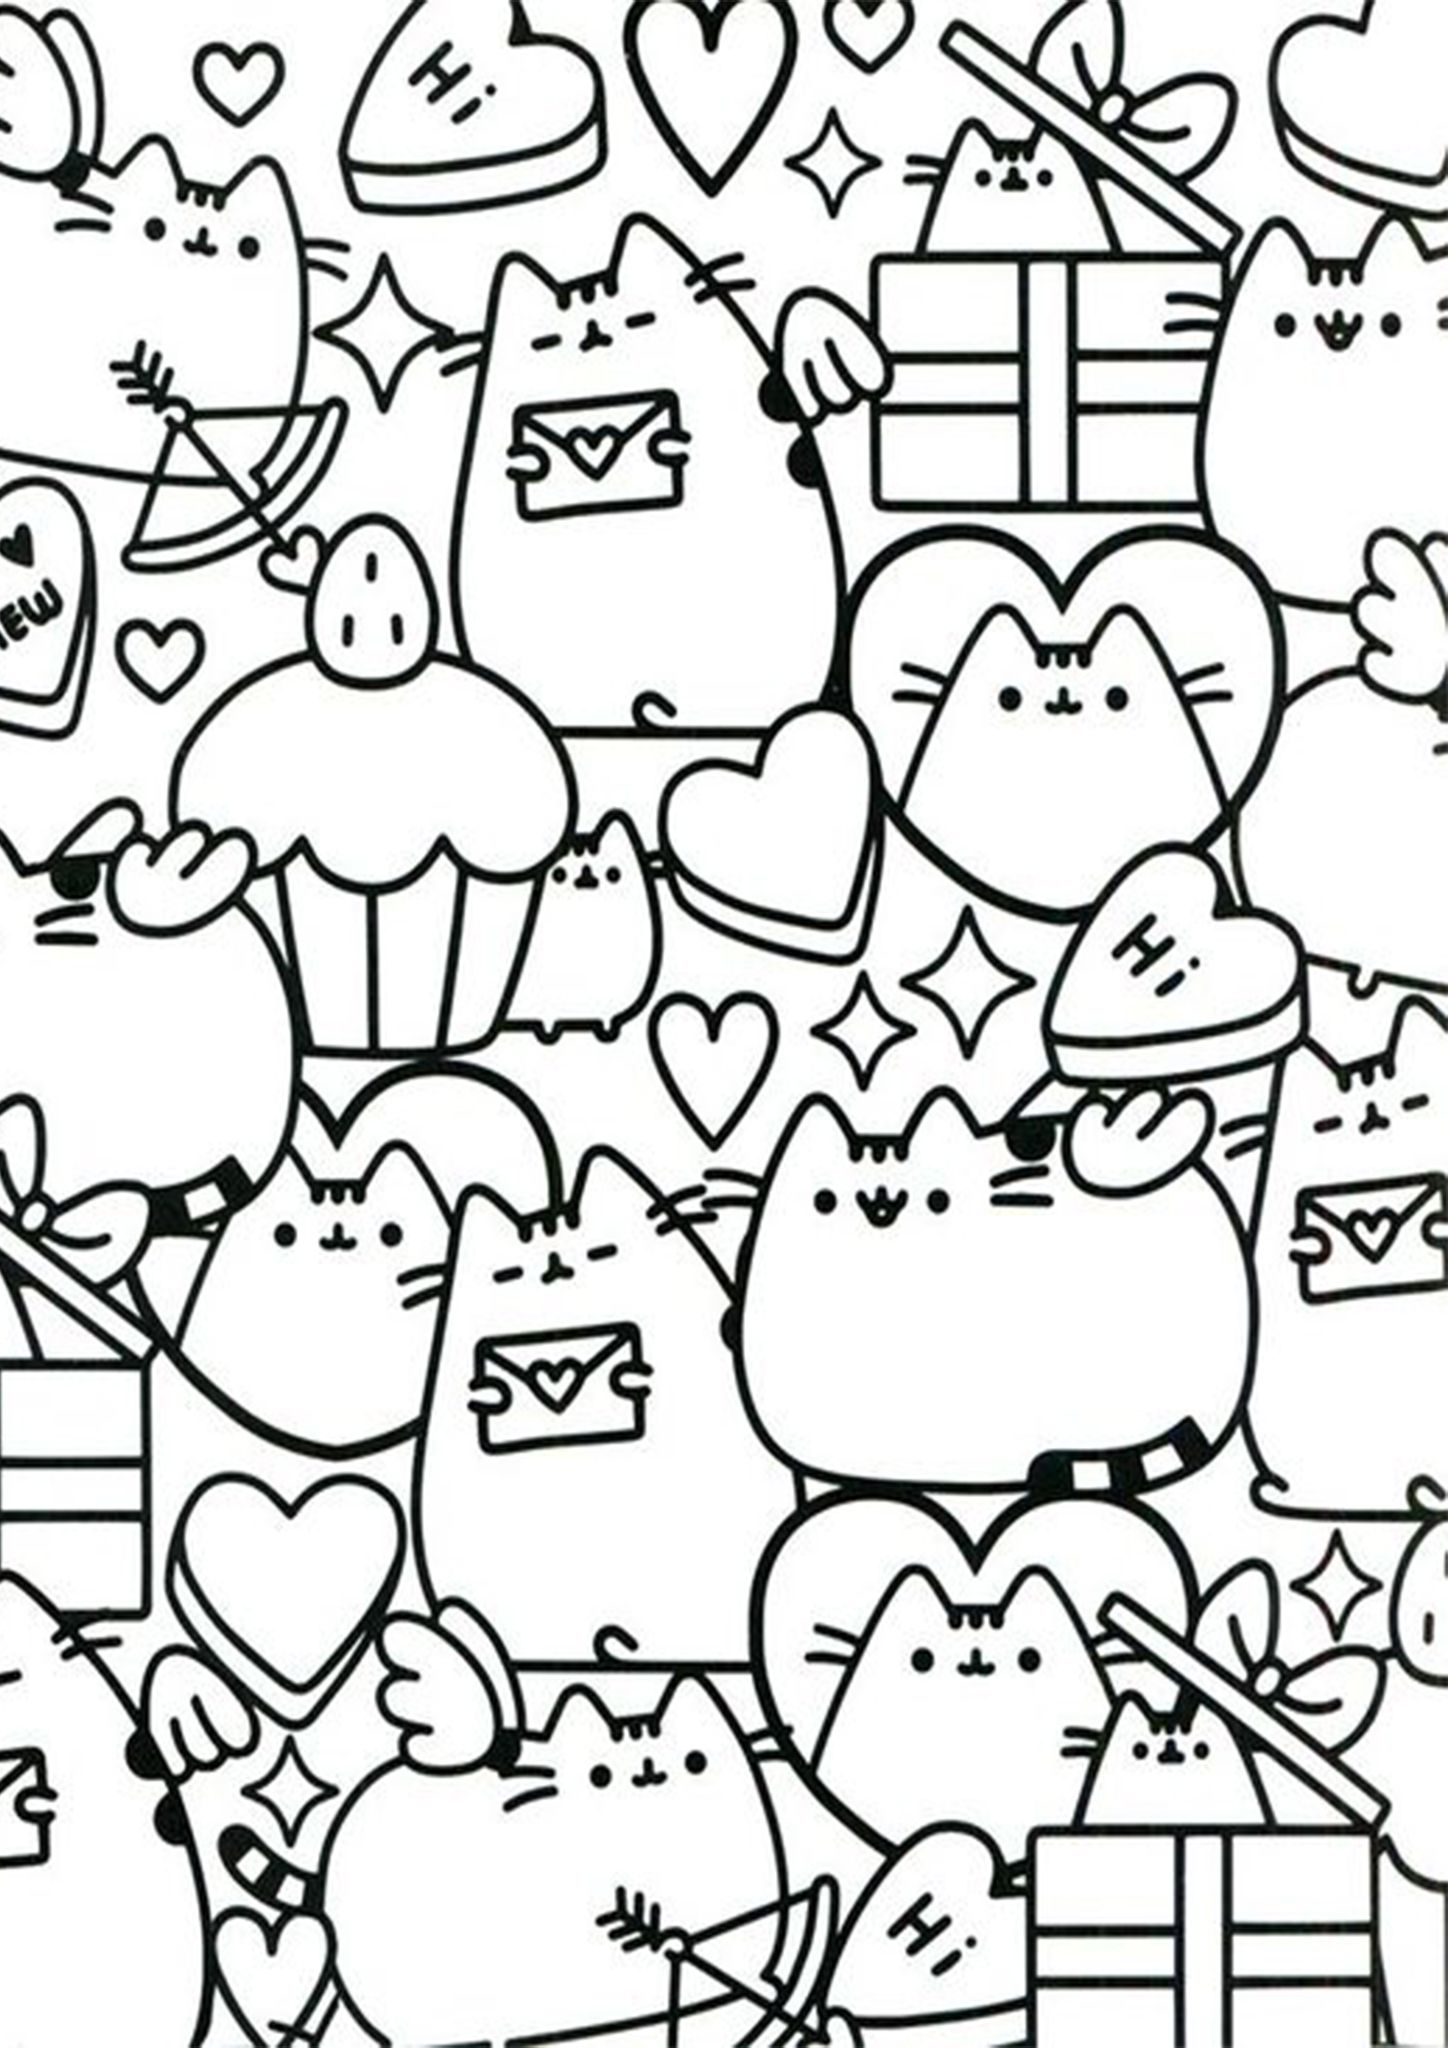 Free Easy To Print Pusheen Coloring Pages In 2020 Pusheen Coloring Pages Valentine Coloring Pages Unicorn Coloring Pages